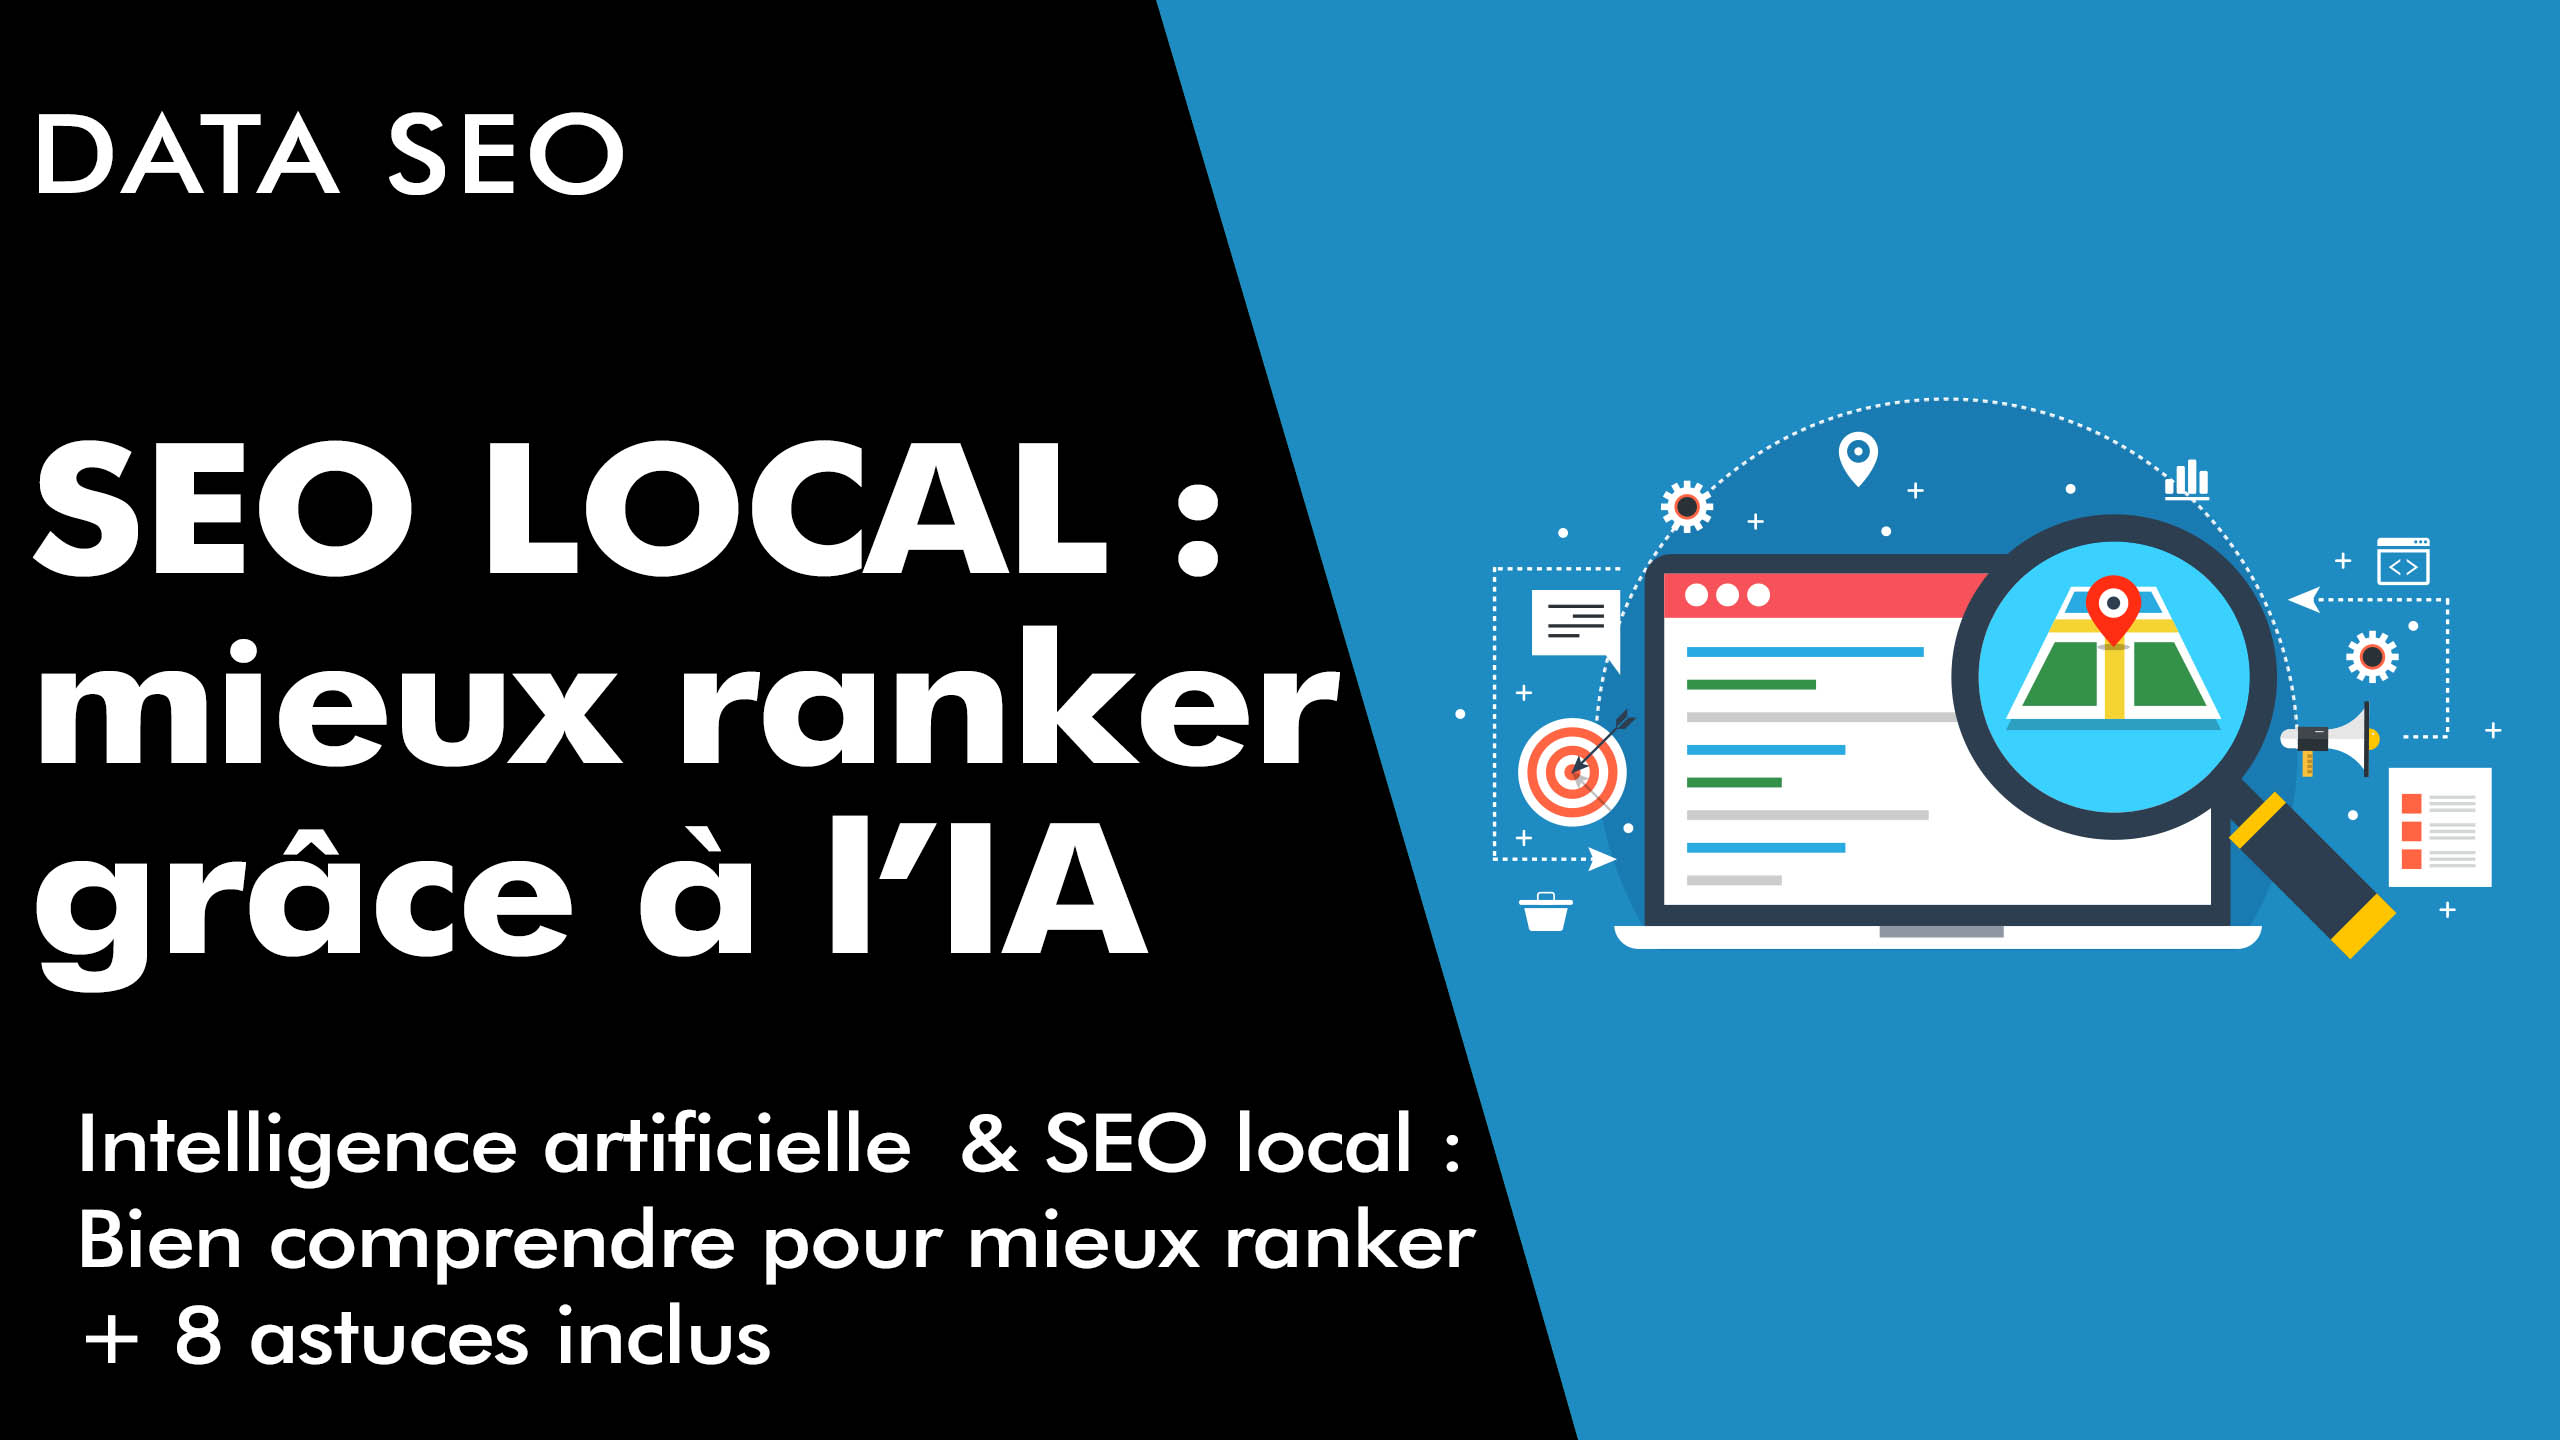 SEO Local : mieux ranker grâce à l\ intelligence artificielle